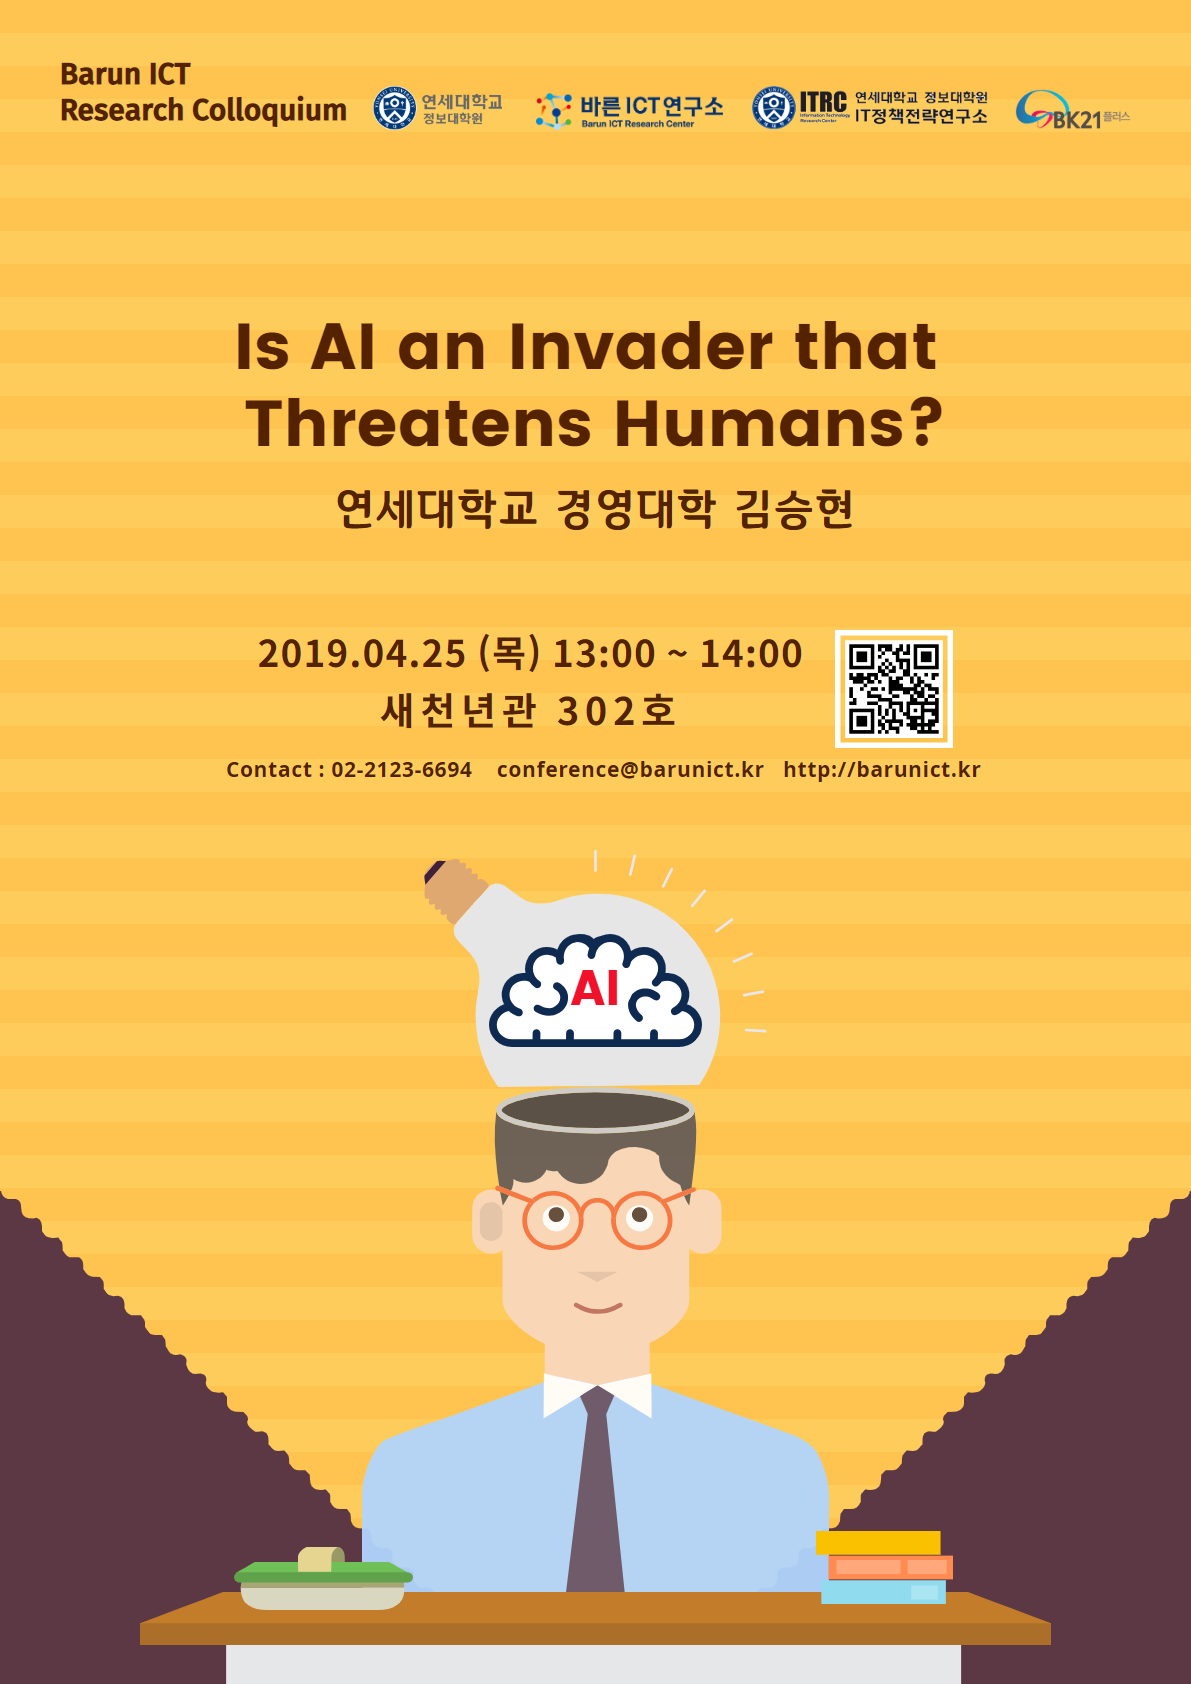 [Research Colloquium] Is AI An Invader That Threatens Humans?